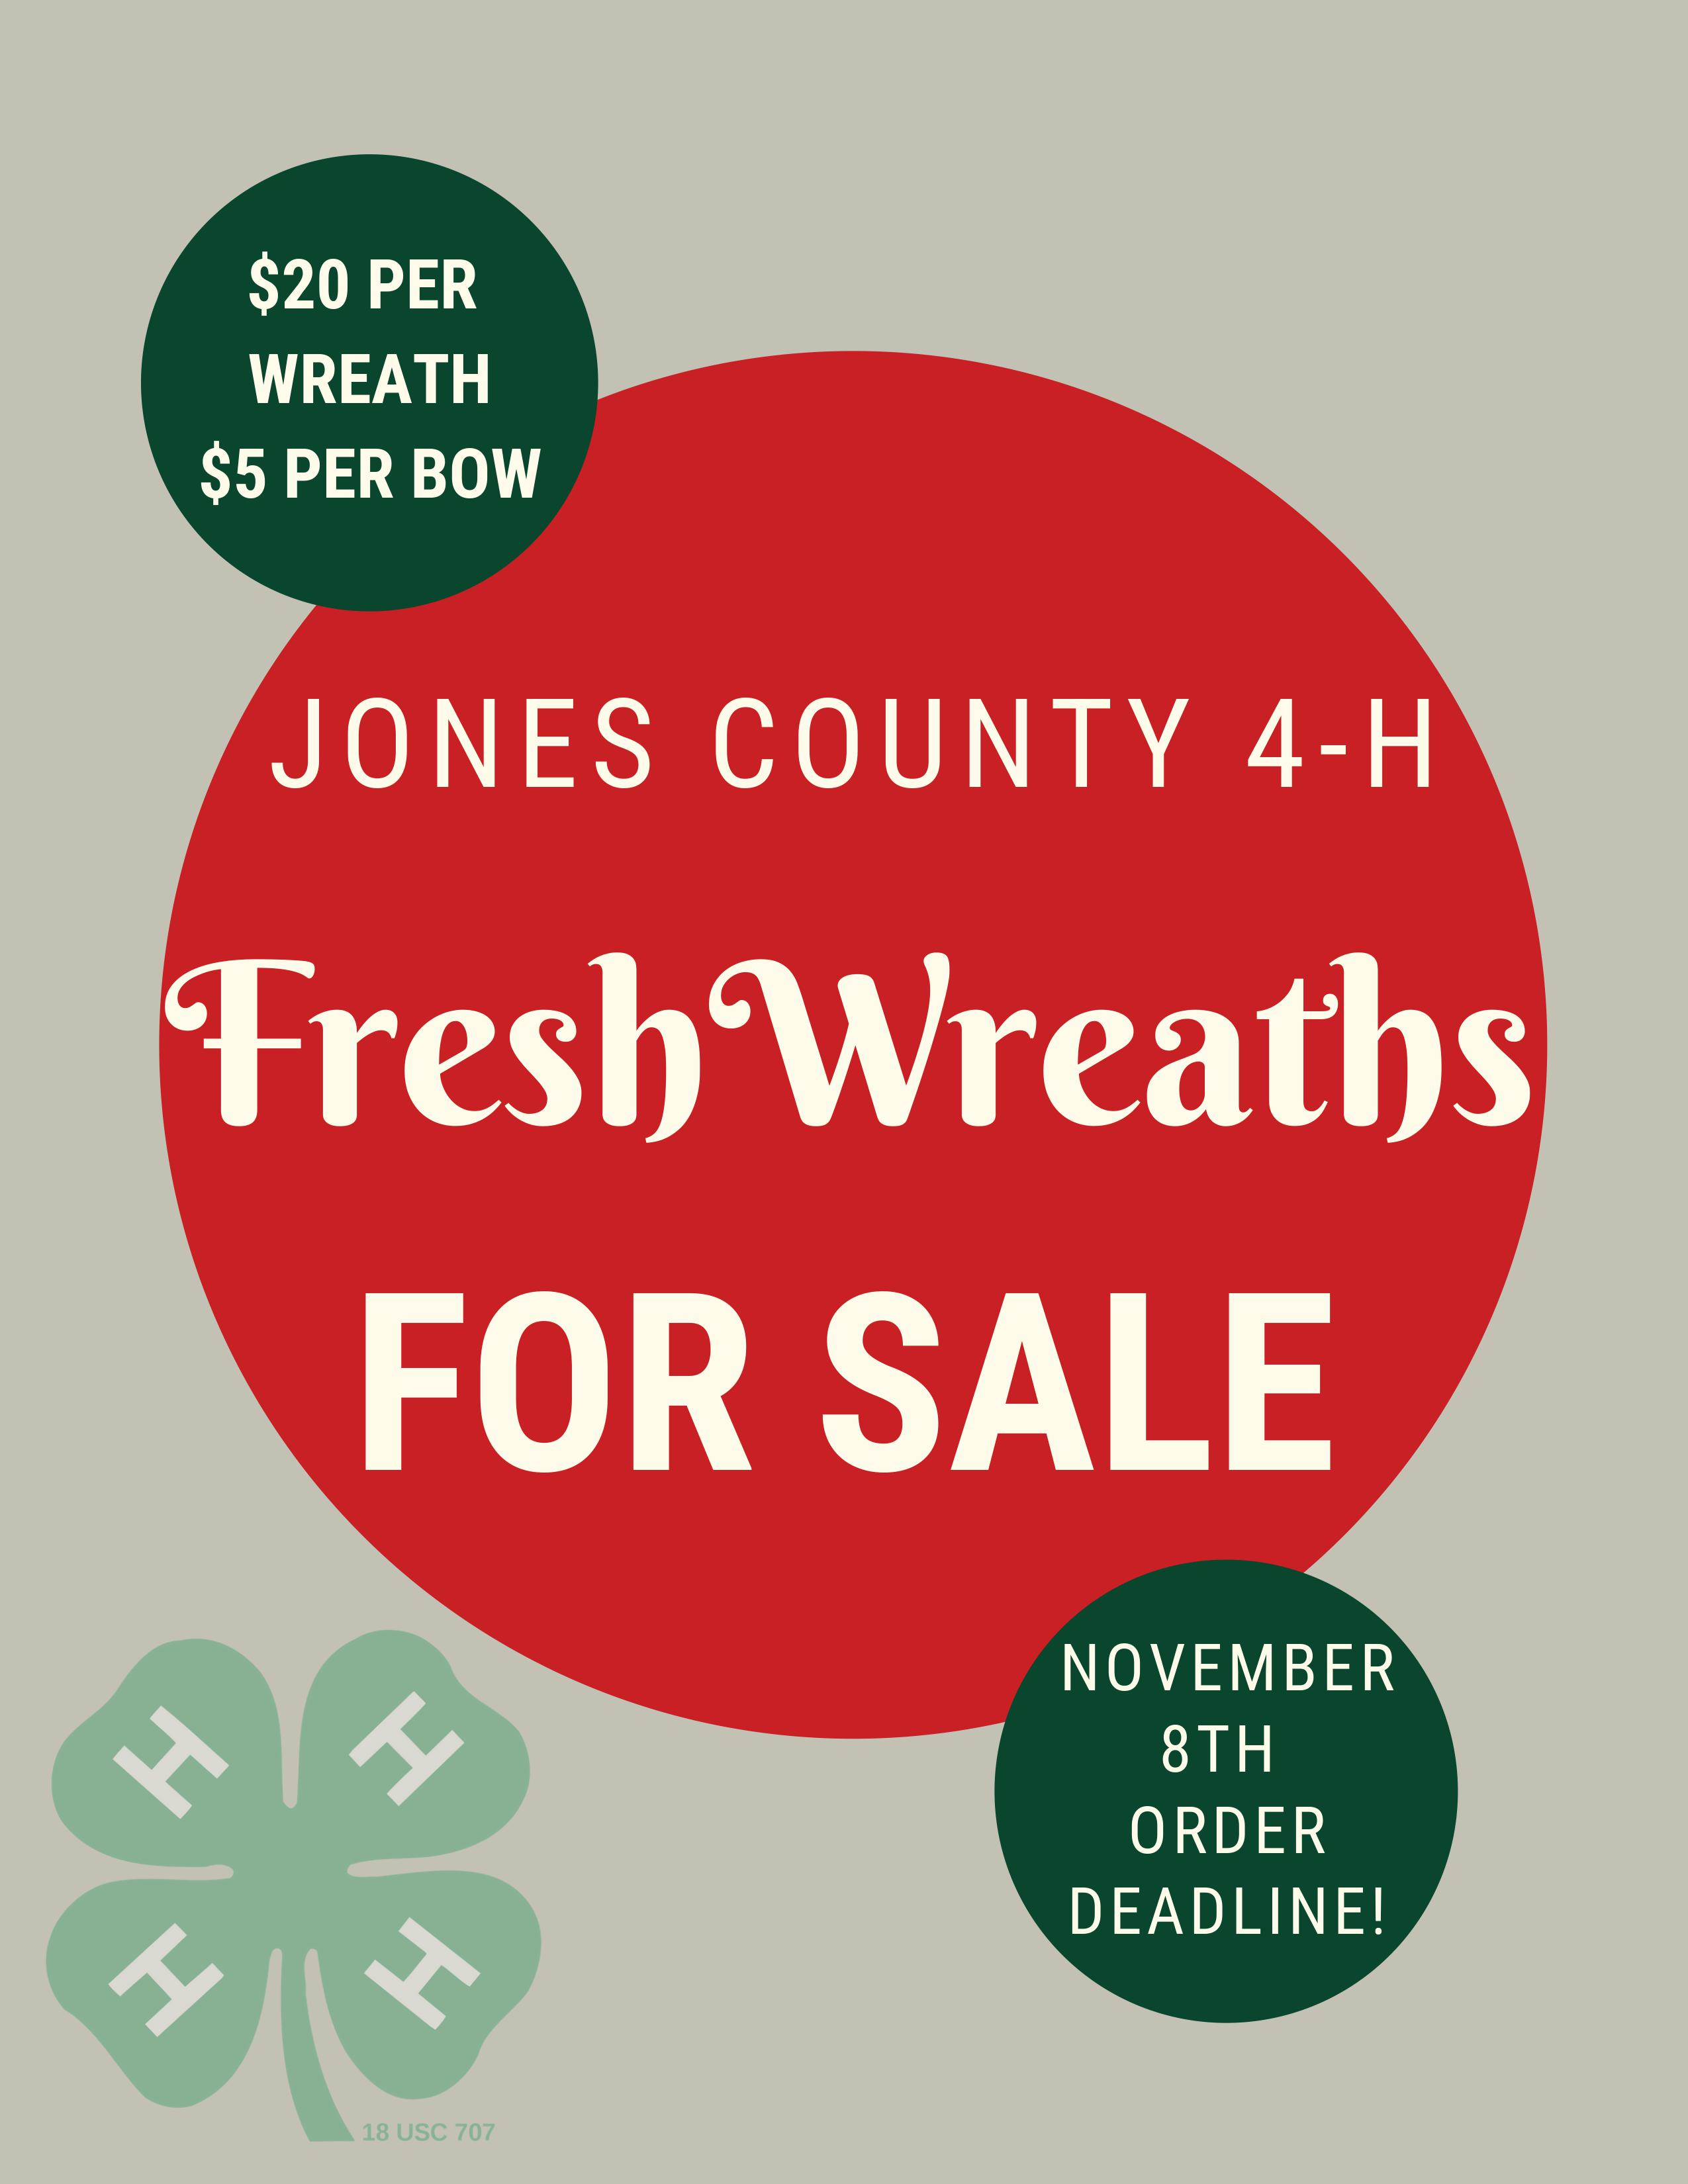 Wreath sale flyer 1 image